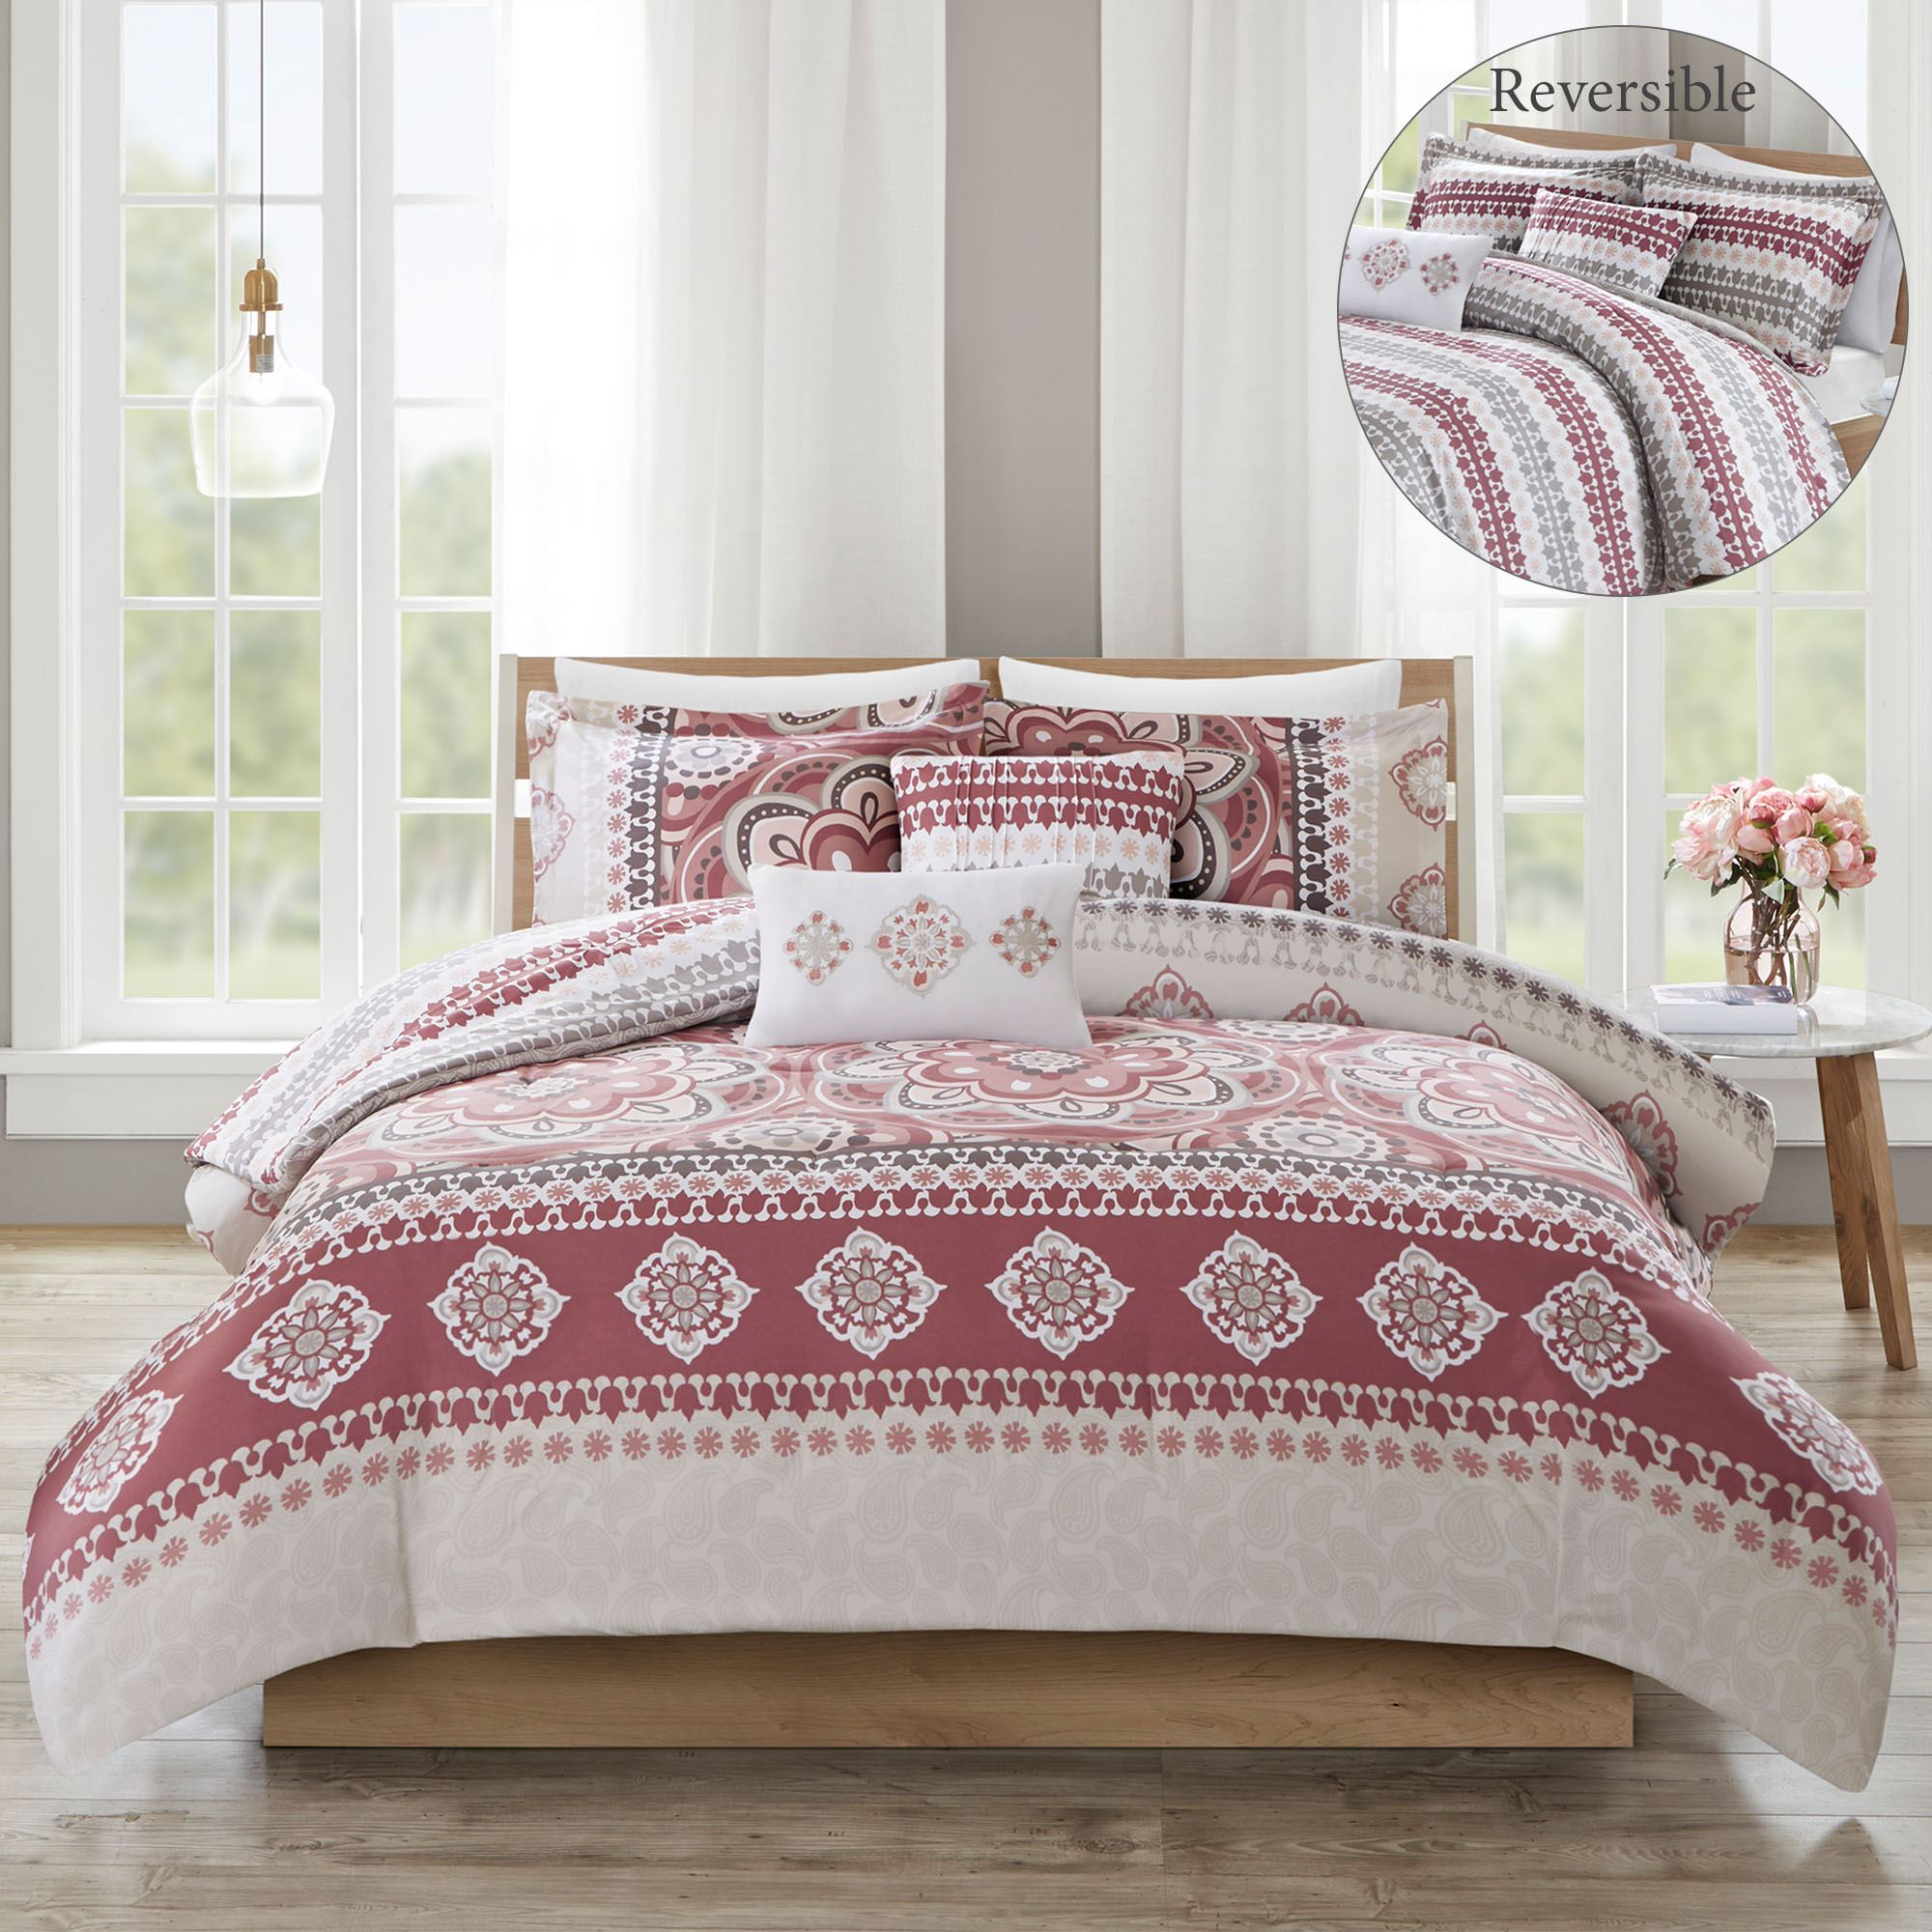 46 Bohemian Style Bedroom Sets New Hd Bedroomsets Pro